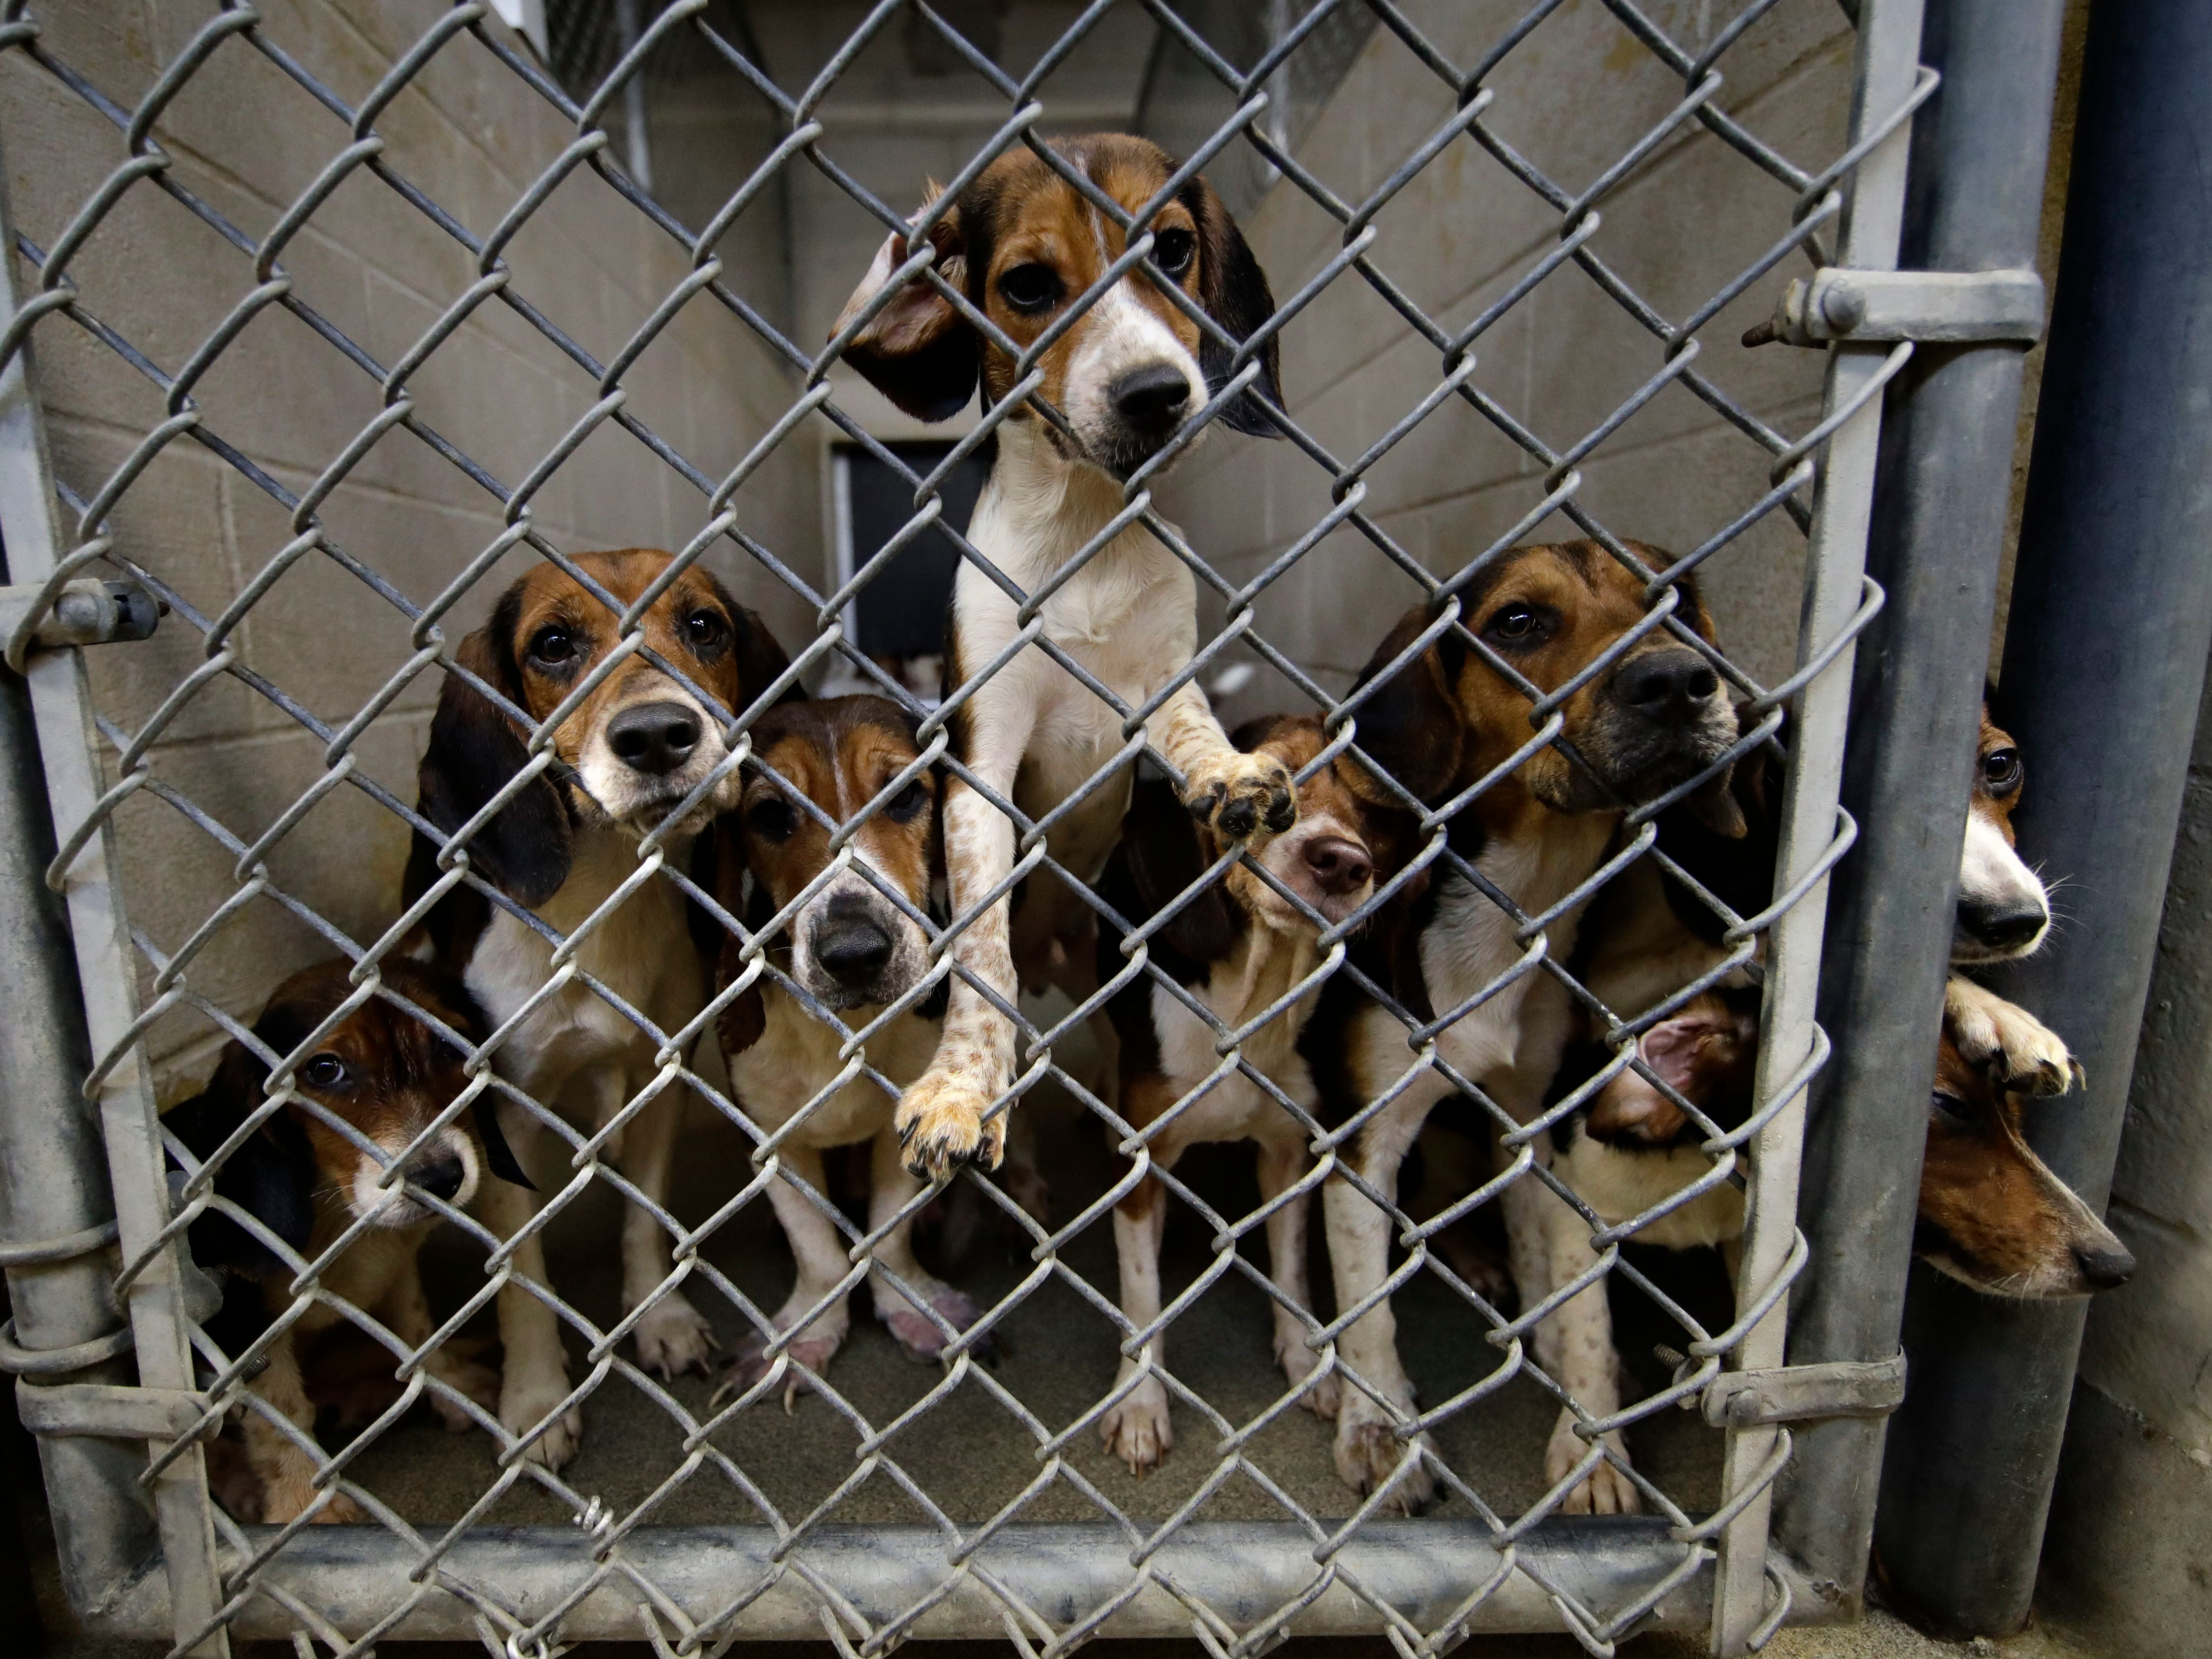 Rescued beagles peers out from their kennel at the The Lehigh County Humane Society in Allentown, Pa., Monday, Oct. 8, 2018. Animal welfare workers removed 71 beagles from a cramped house in rural Pennsylvania, where officials say a woman had been breeding them without a license before she died last month.